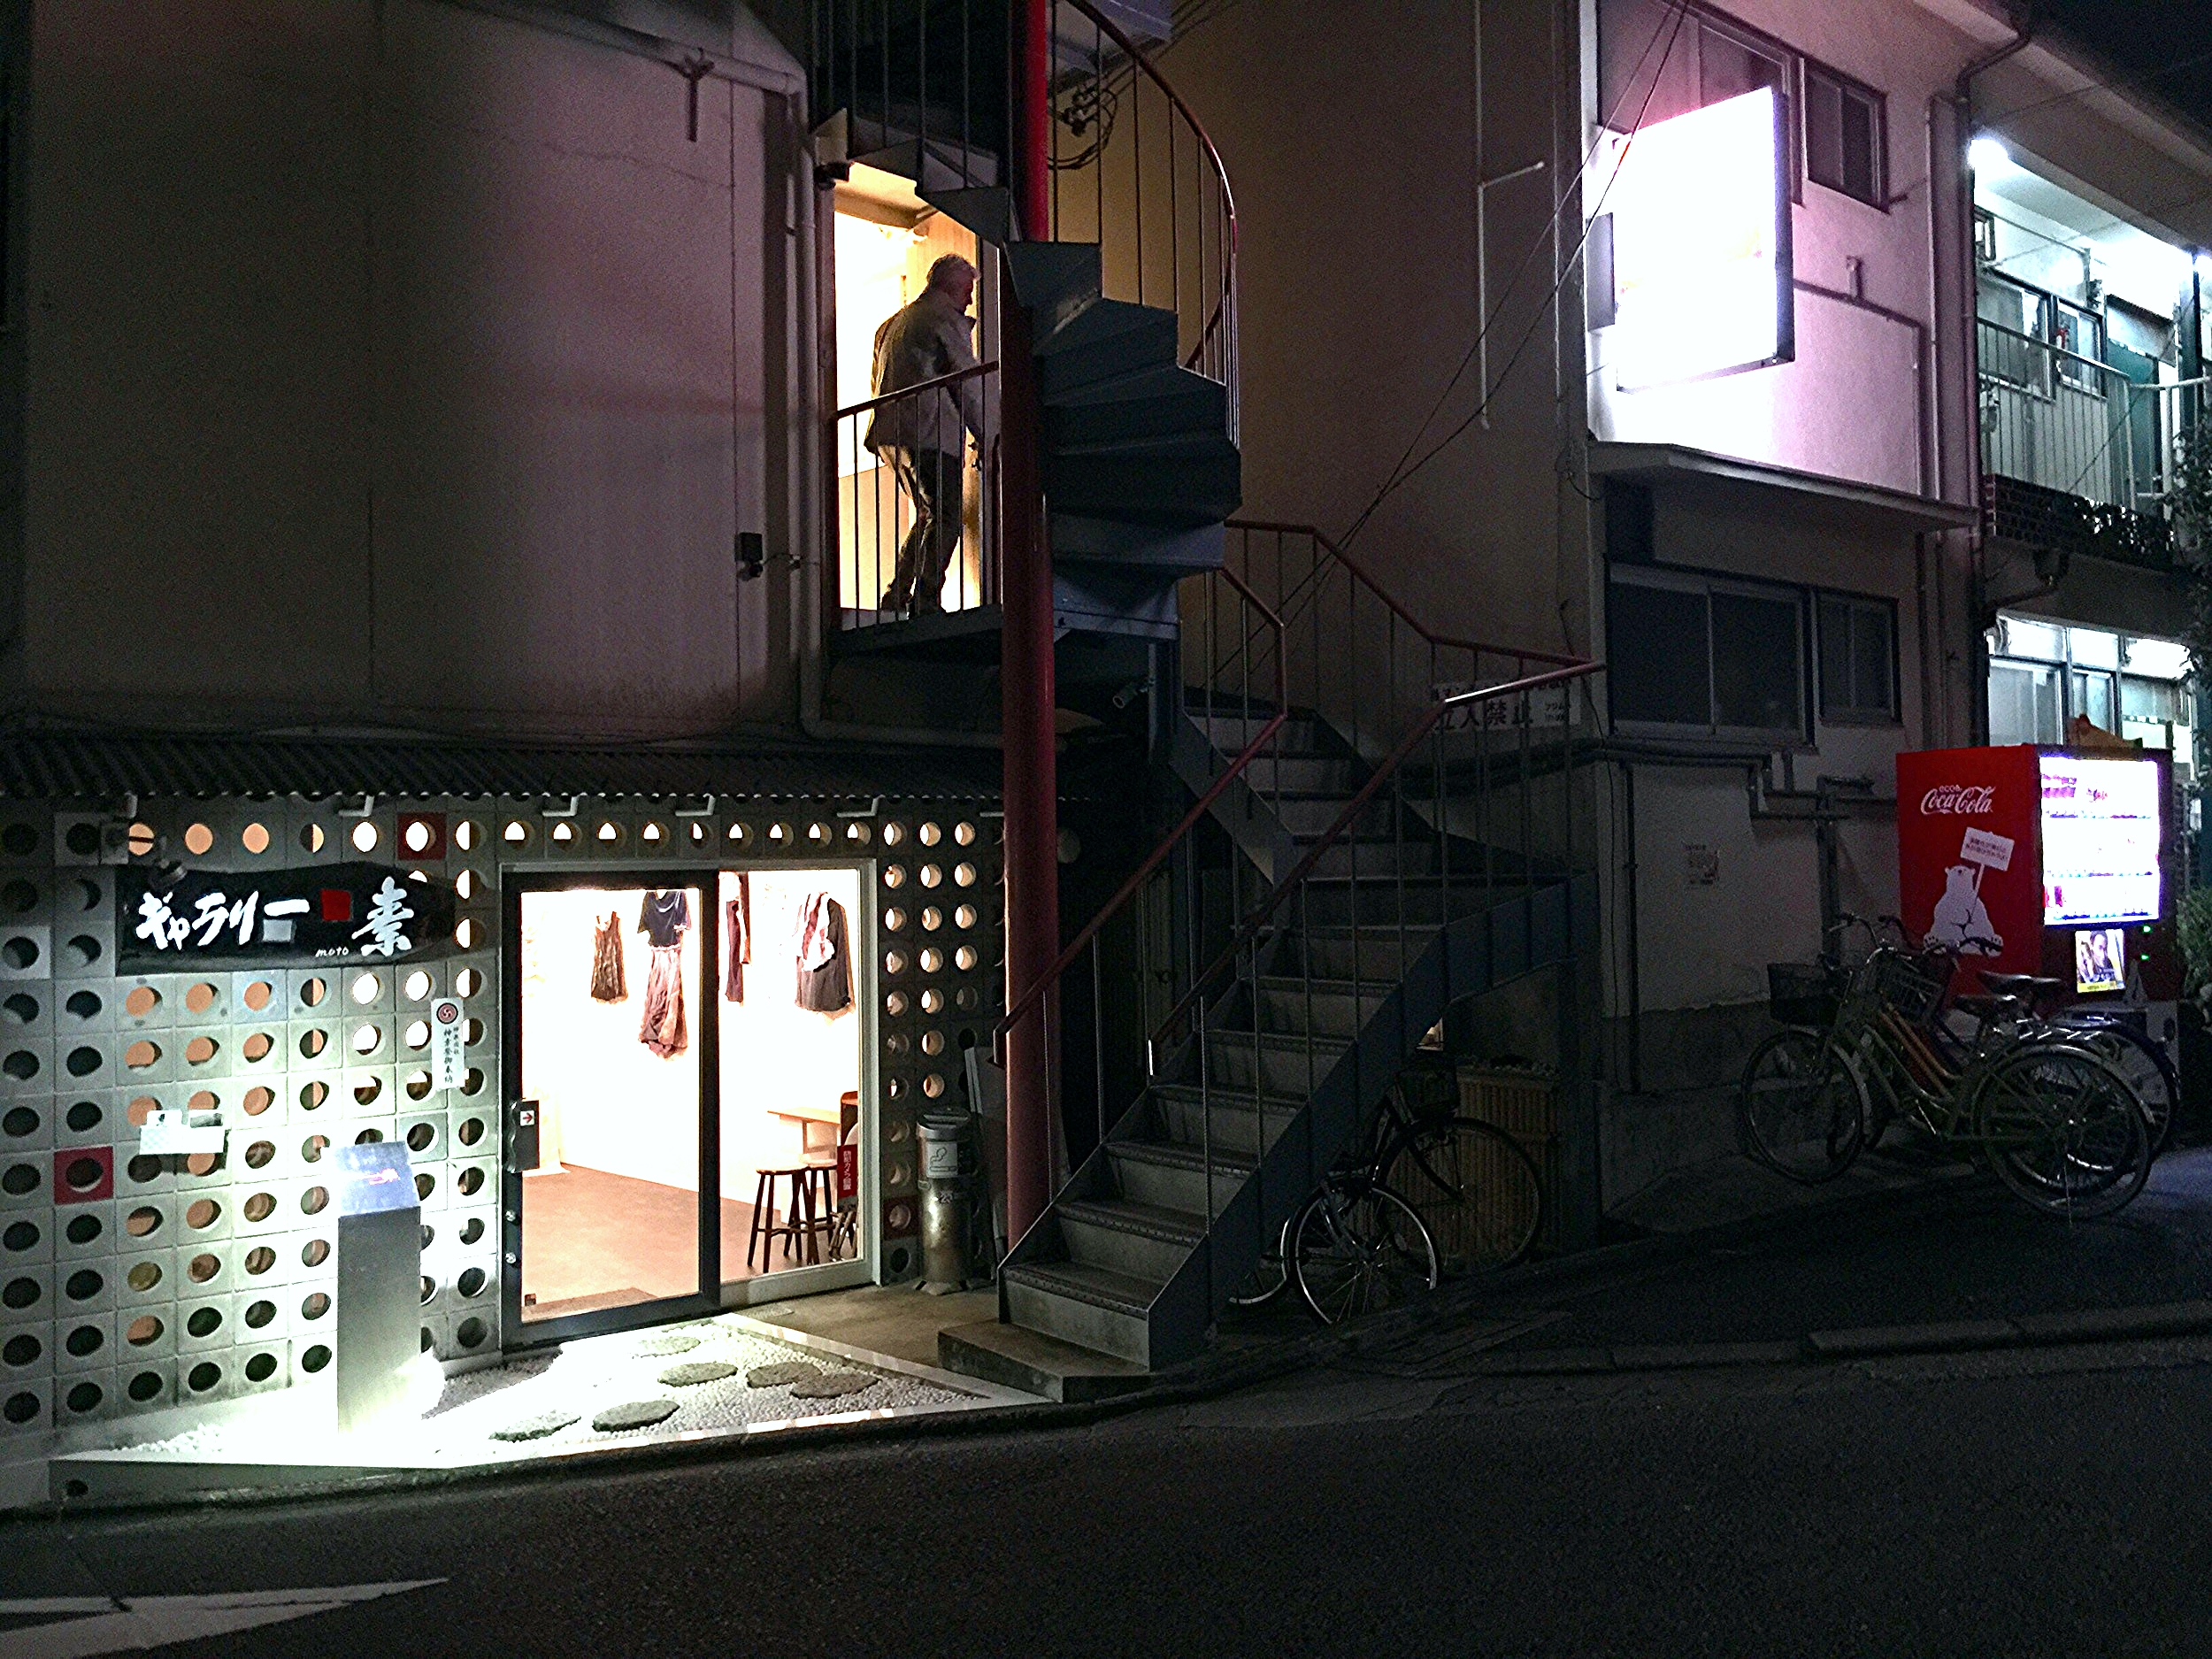 Coming home to our airbnb in kyoto